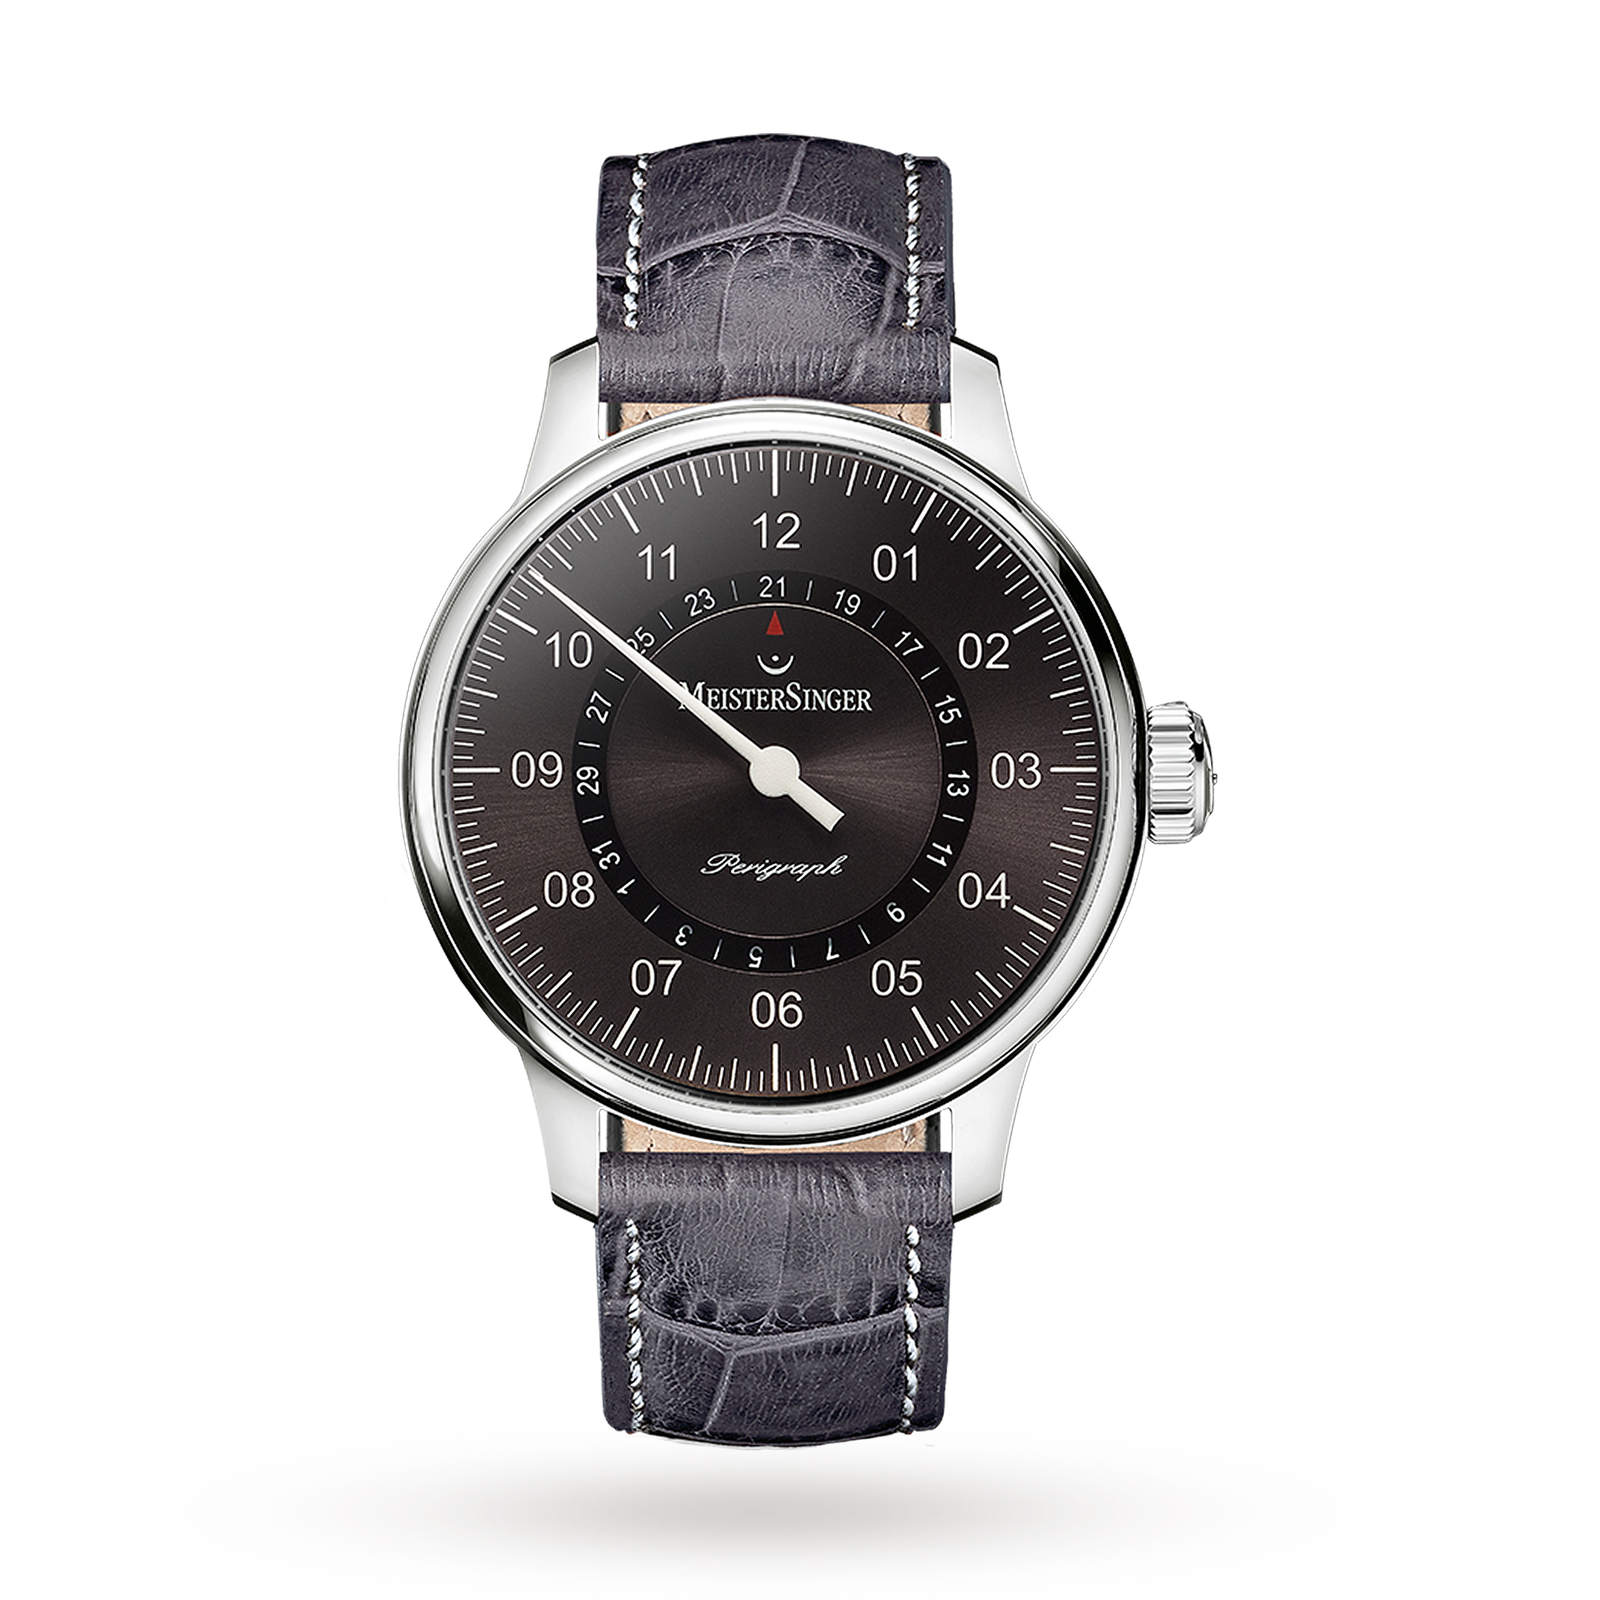 MeisterSinger Perigraph AM1007 Mens Watch